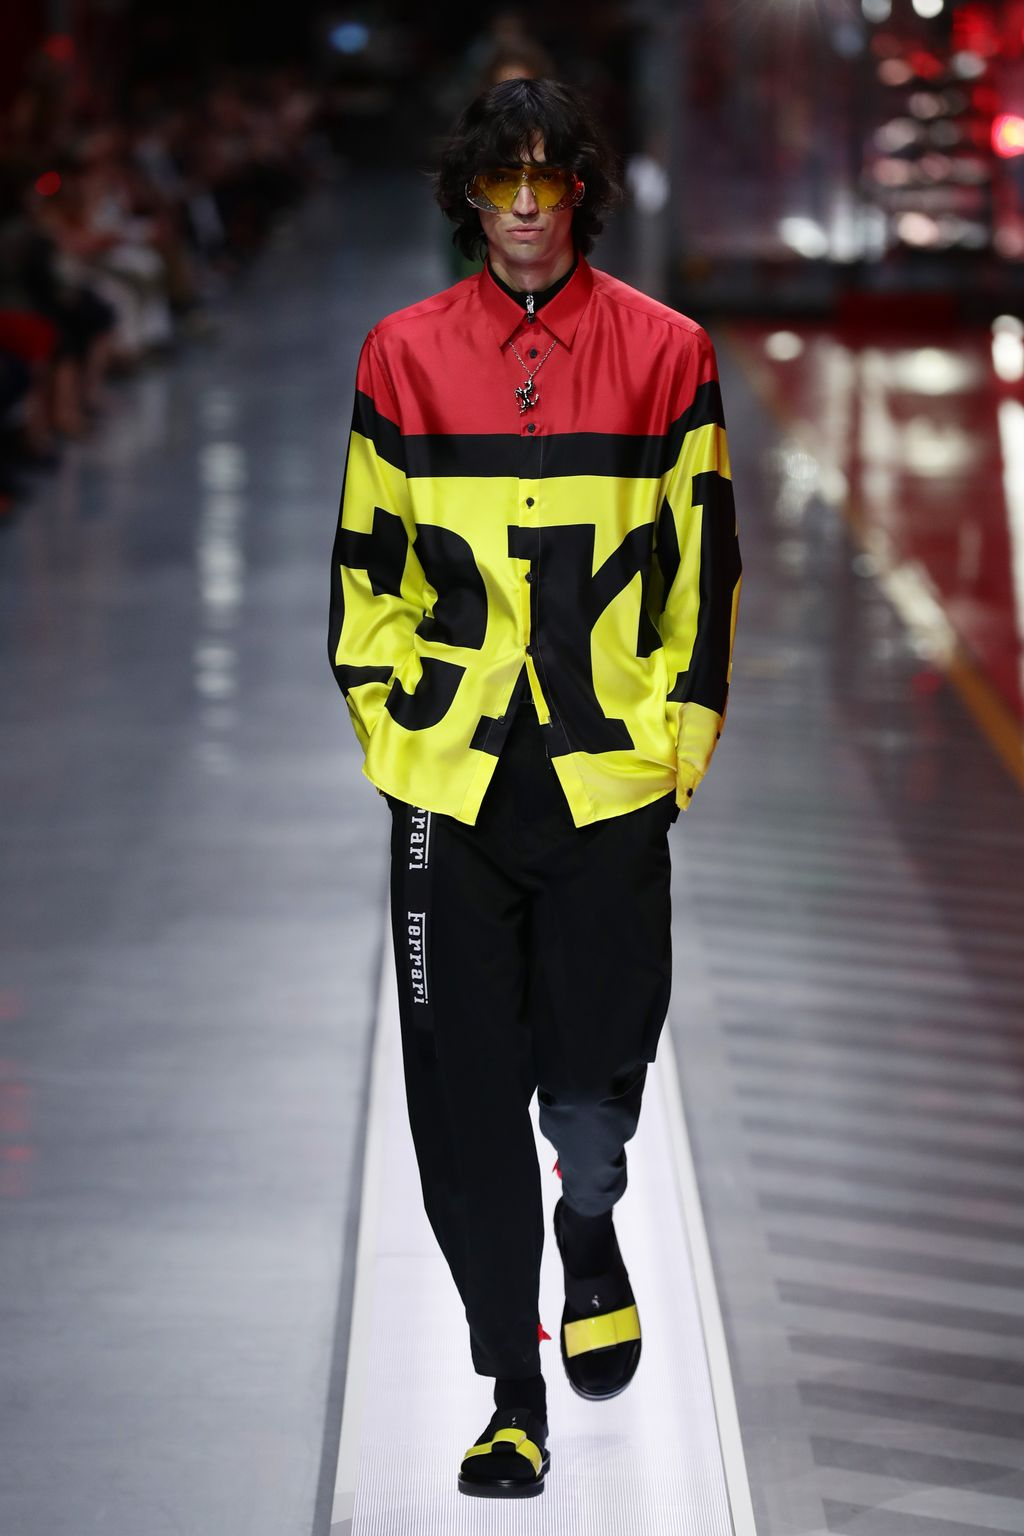 MARANELLO, ITALY - JUNE 13:  A model walks the runway at the fashion debut of the first co-ed Ferrari collection at Ferrari Factory on June 13, 2021 in Maranello, Italy. (Photo by Vittorio Zunino Celotto/Getty Images)